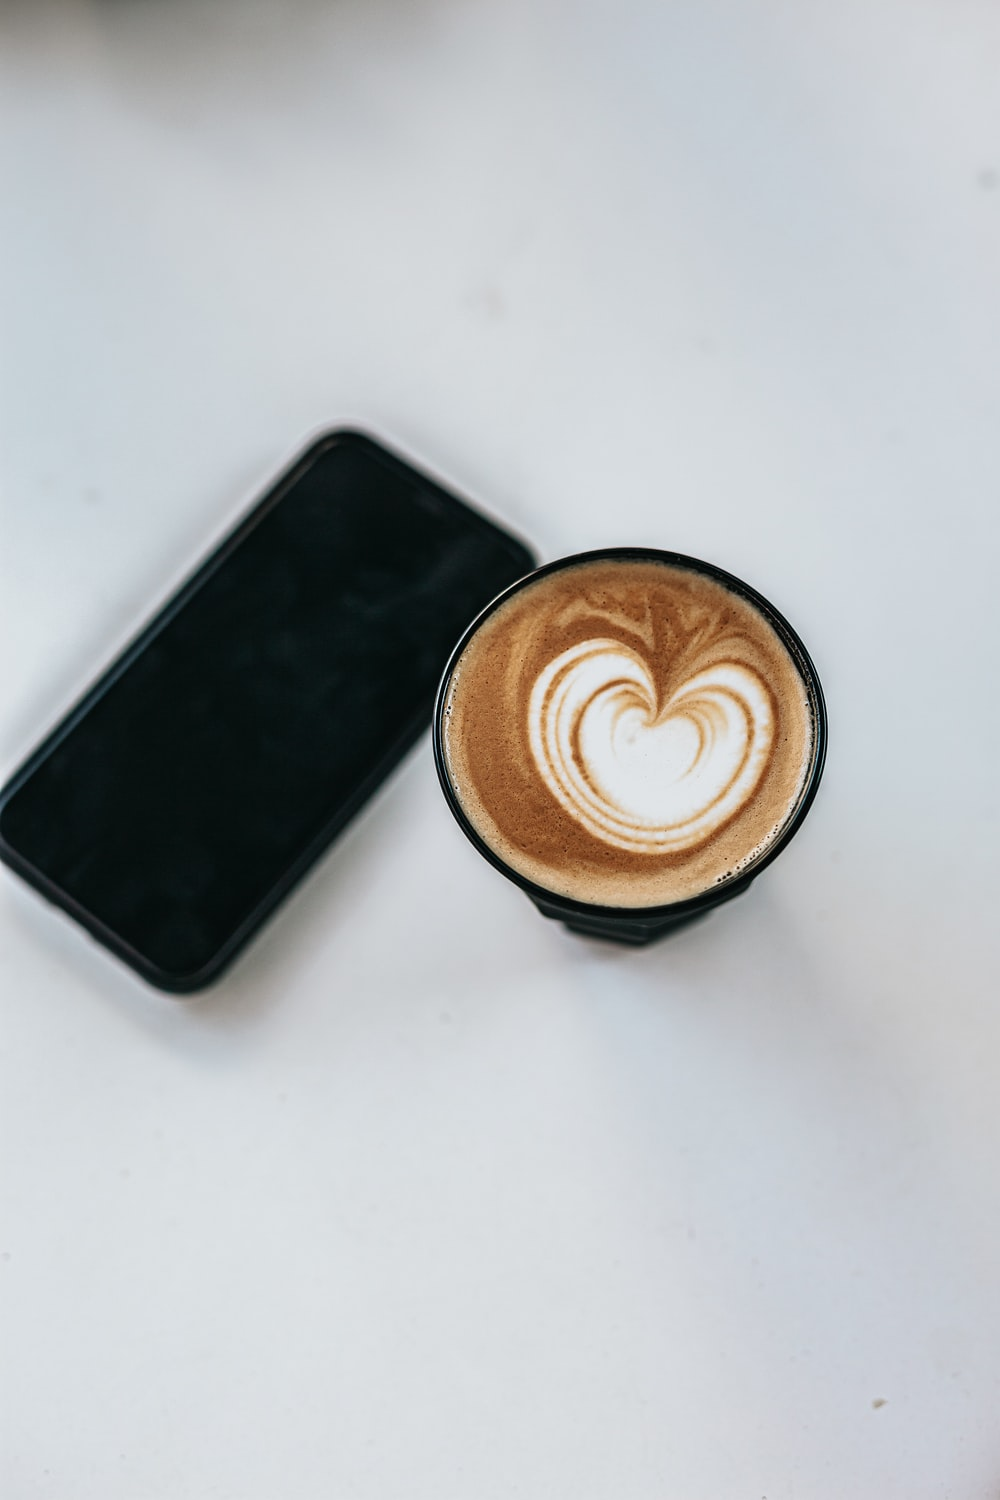 black android smartphone beside brown and white ceramic mug with coffee